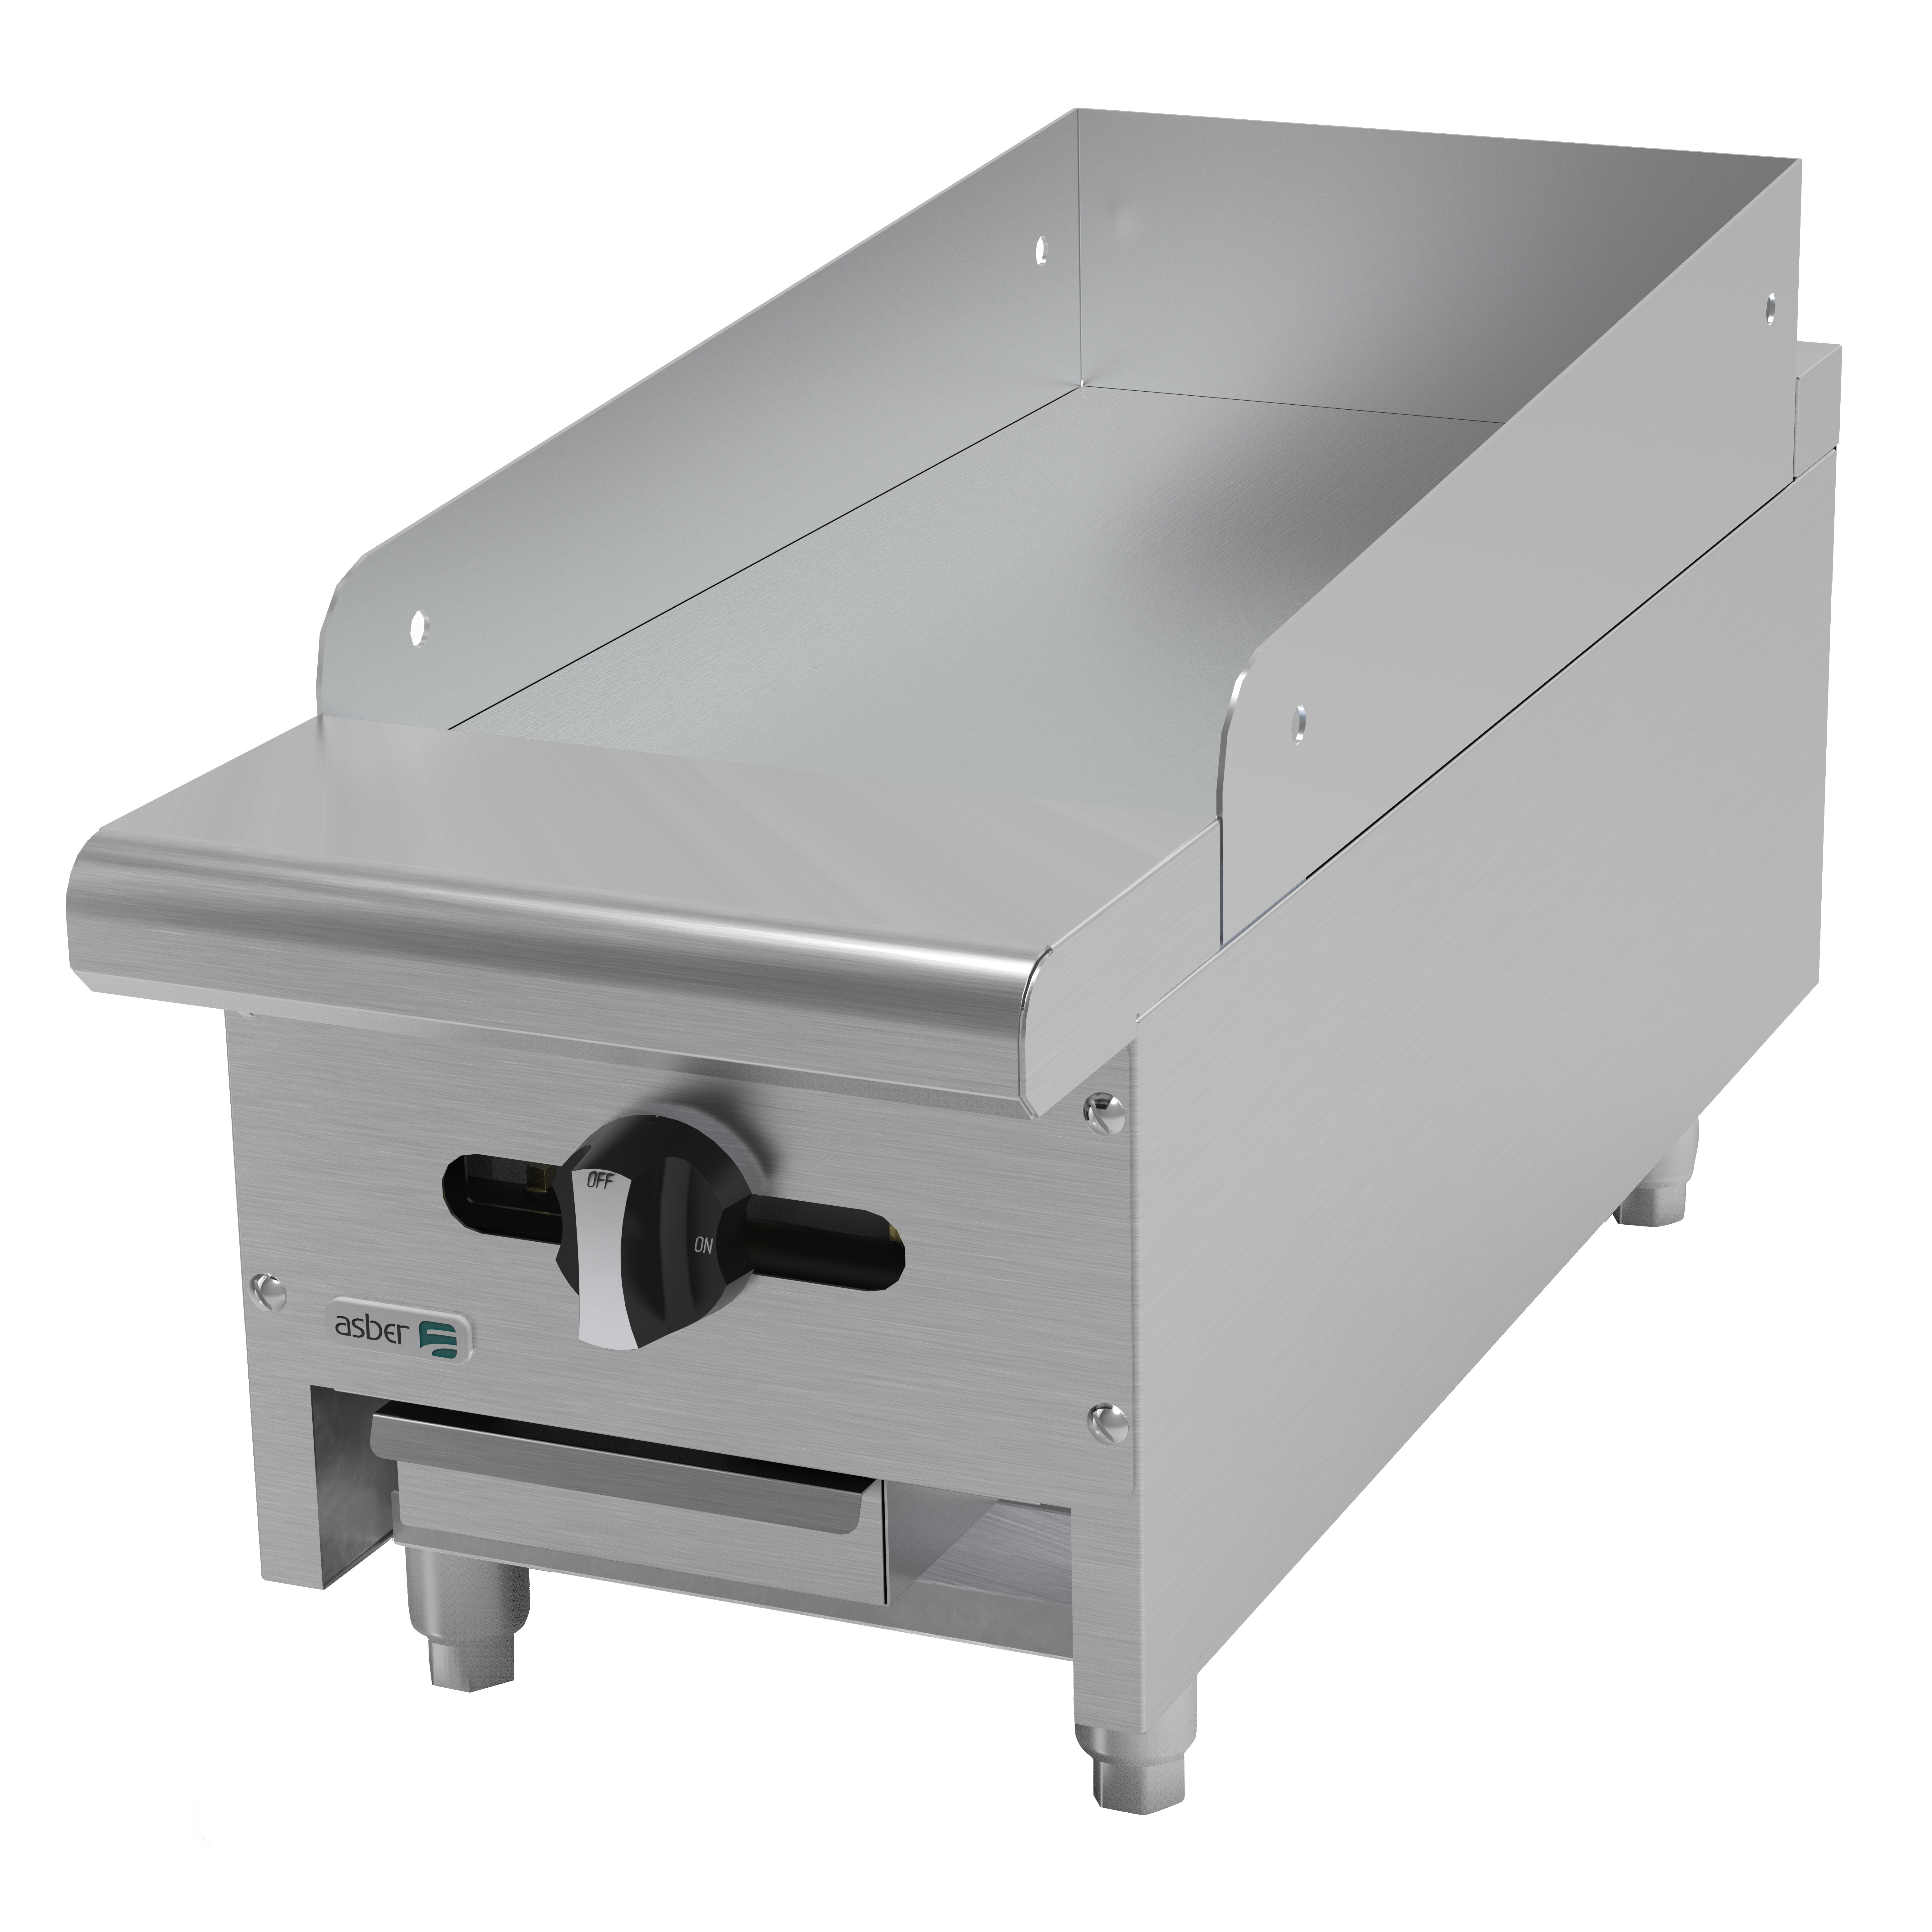 Asber AEMG-12 griddle, gas, countertop